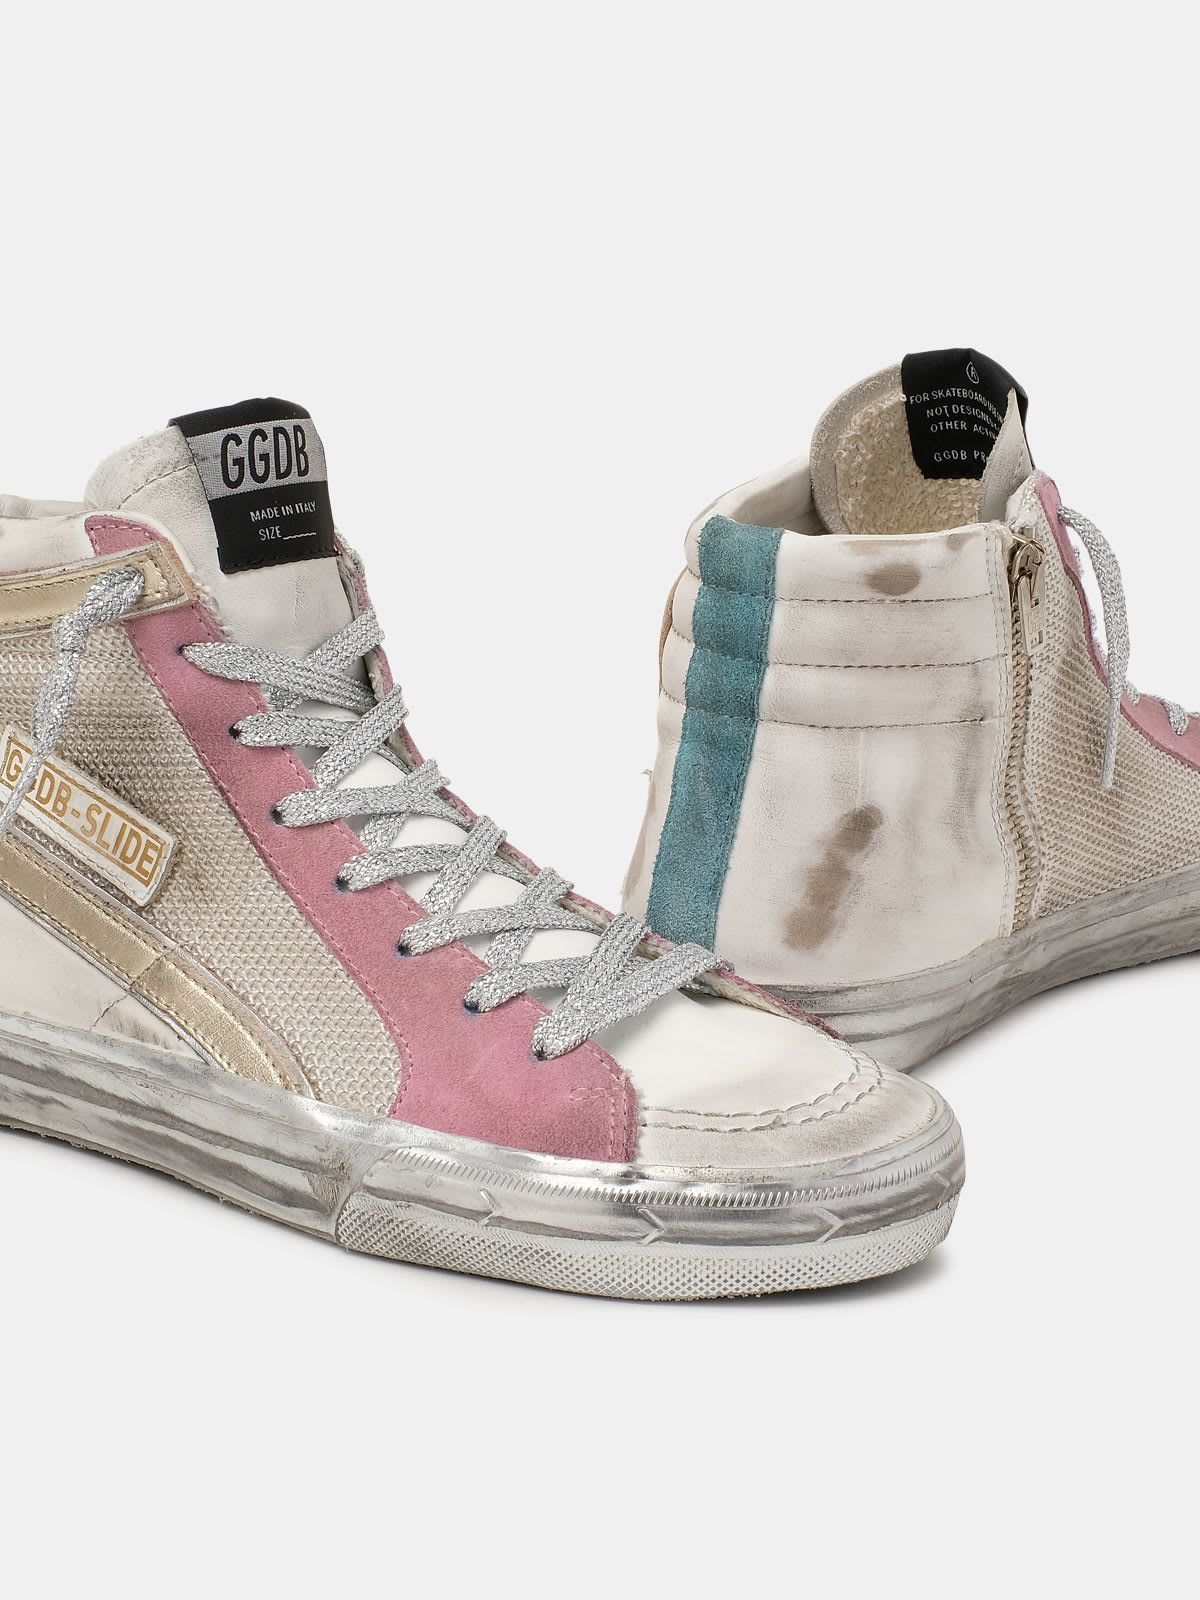 Slide sneakers with white and pink upper